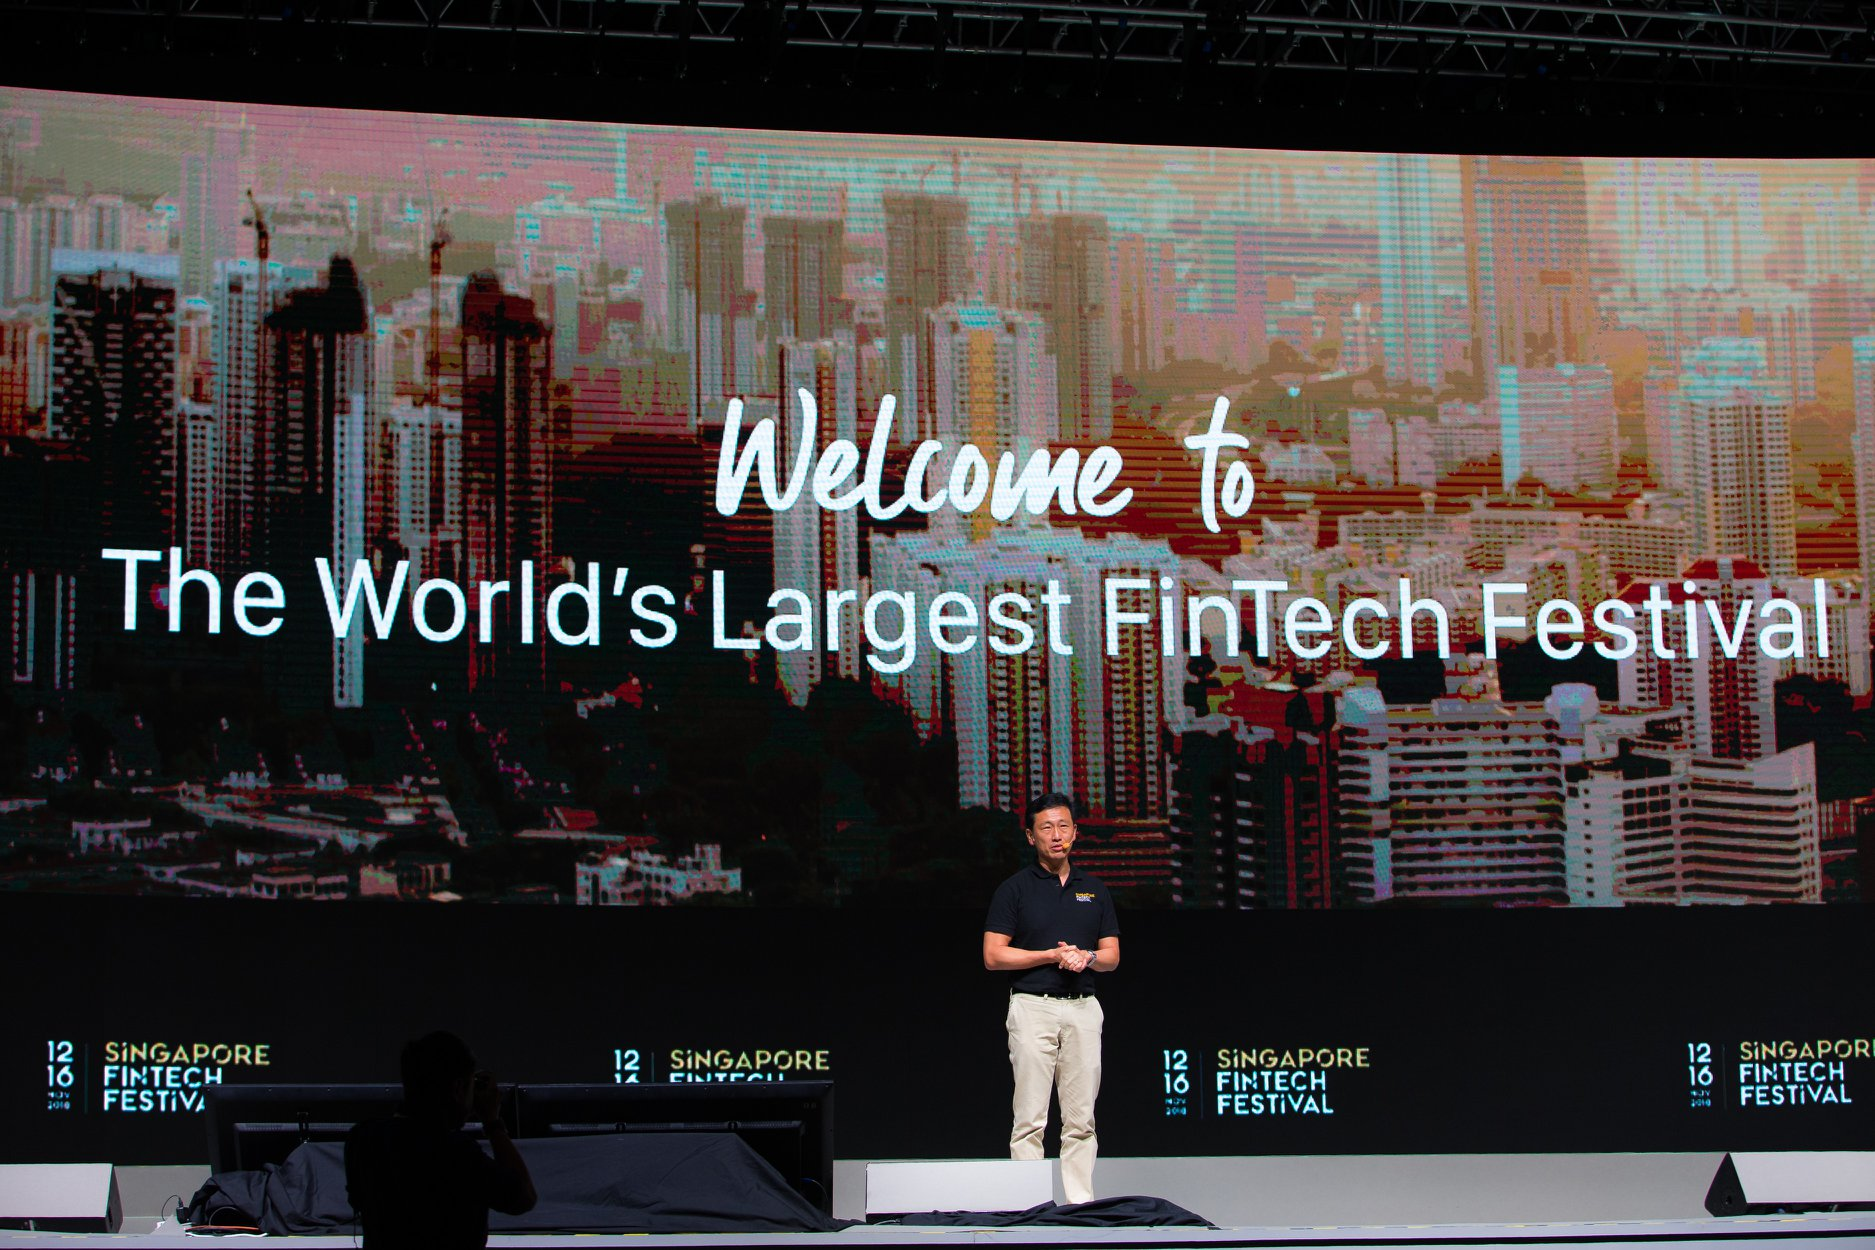 This year, the Singapore FinTech Festival (SFF) will be joining hands with the Singapore Week of Innovation and TeCHnology (SWITCH). Photo courtesy: SG FinTech Festival